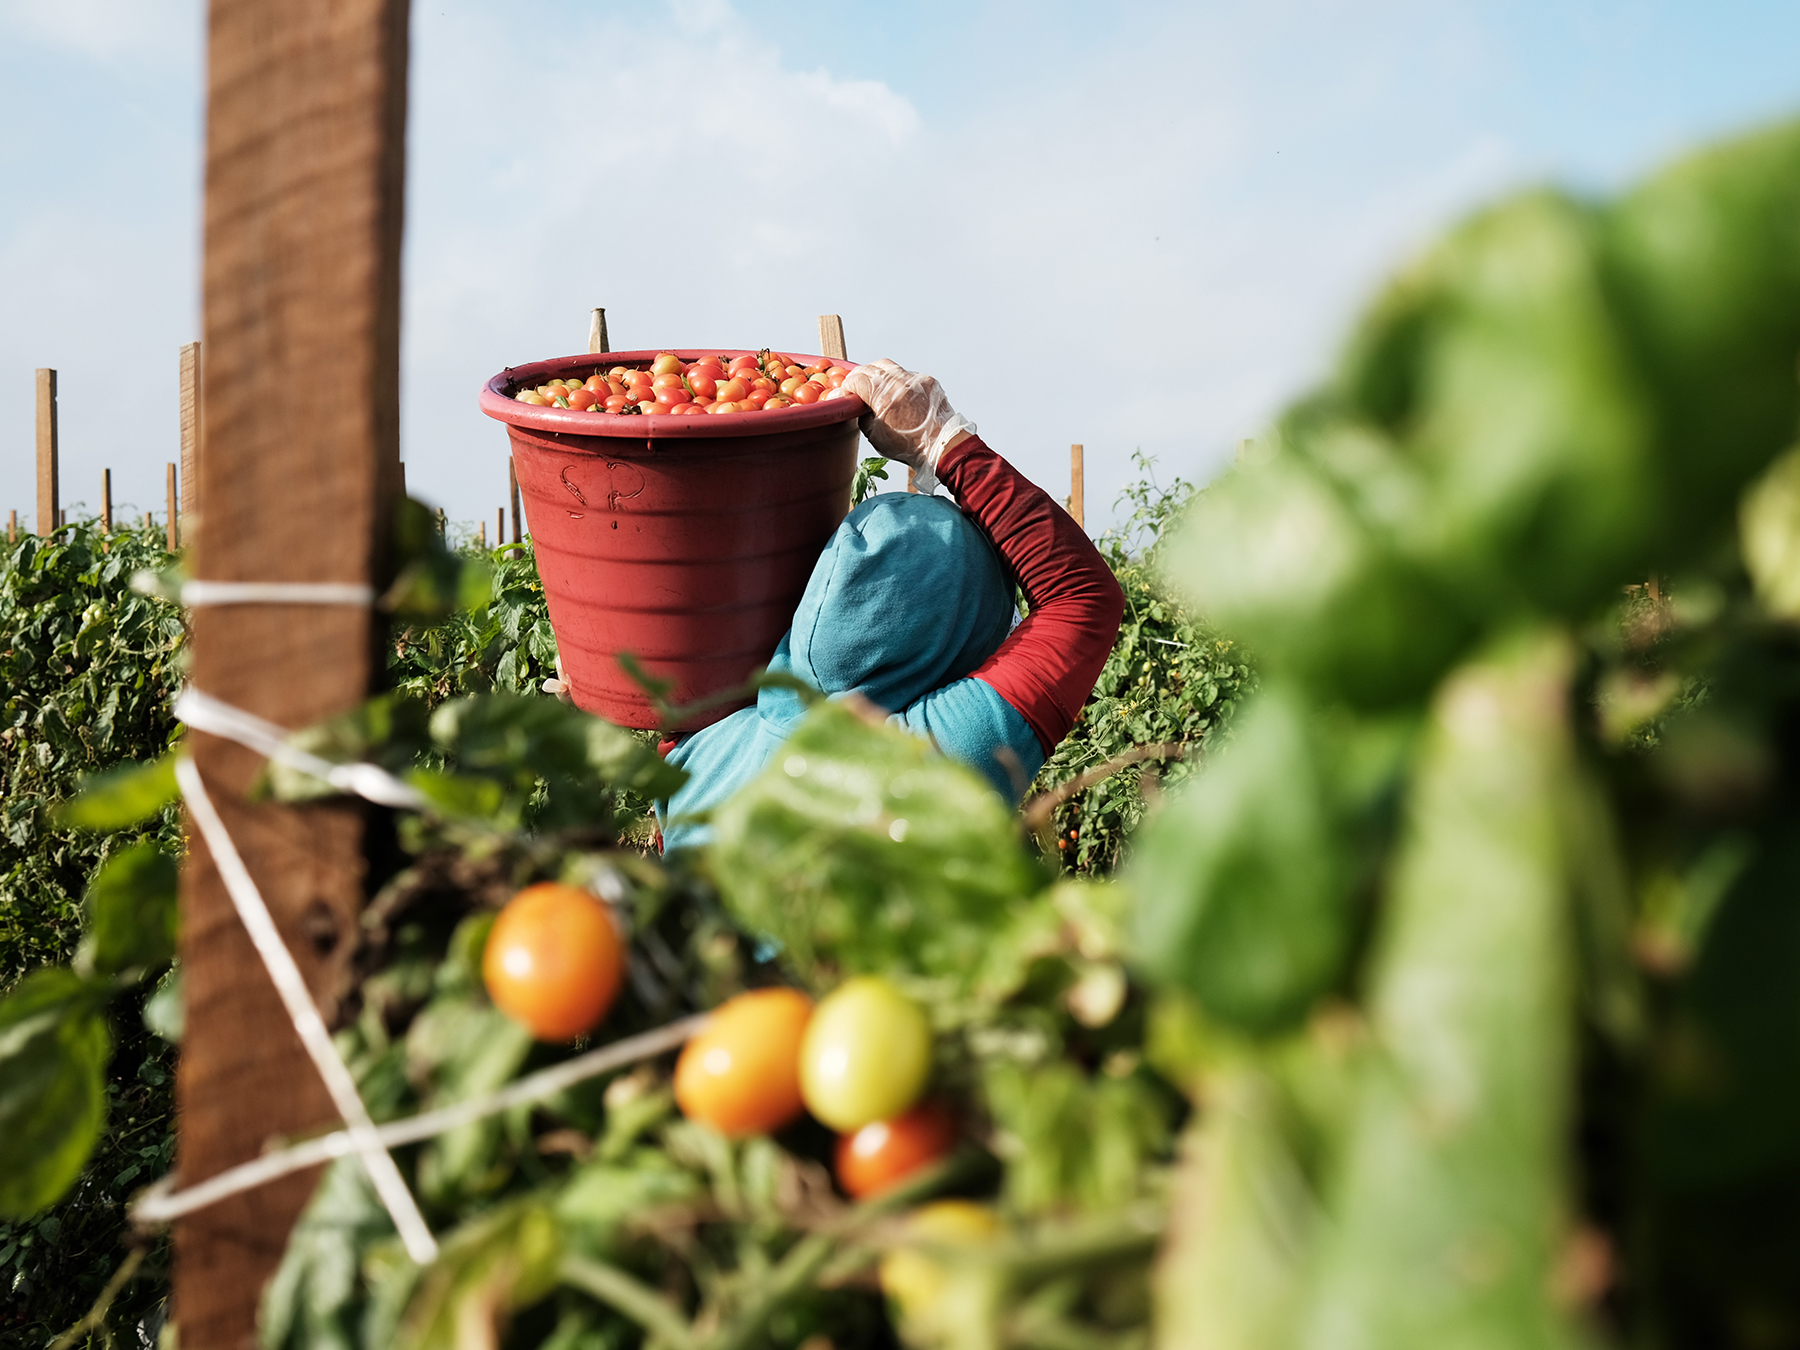 IMMOKALEE, FLORIDA - FEBRUARY 19: Workers pick tomatoes at a farm owned and operated by Pacific Tomato Growers on February 19, 2021 in Immokalee, Florida. The workers, who are in the country on an agricultural visa, are mostly from Mexico. The agricultural community in Florida is vital to the state's economy and has had to adapt to health measures during the Covid-19 outbreak in order to continue their operations. Workers at Pacific Tomato Growers farms are tested regularly, provided with face coverings, get daily temperature checks and have access to hand washing stations. Workers for the company are also part of the Fair Food Program which ensures that workers receive fair wages and better working conditions in the tomato fields. The fair Food Program was begun by the Coalition of Immokalee Workers in 2010. (Photo by Spencer Platt/Getty Images)